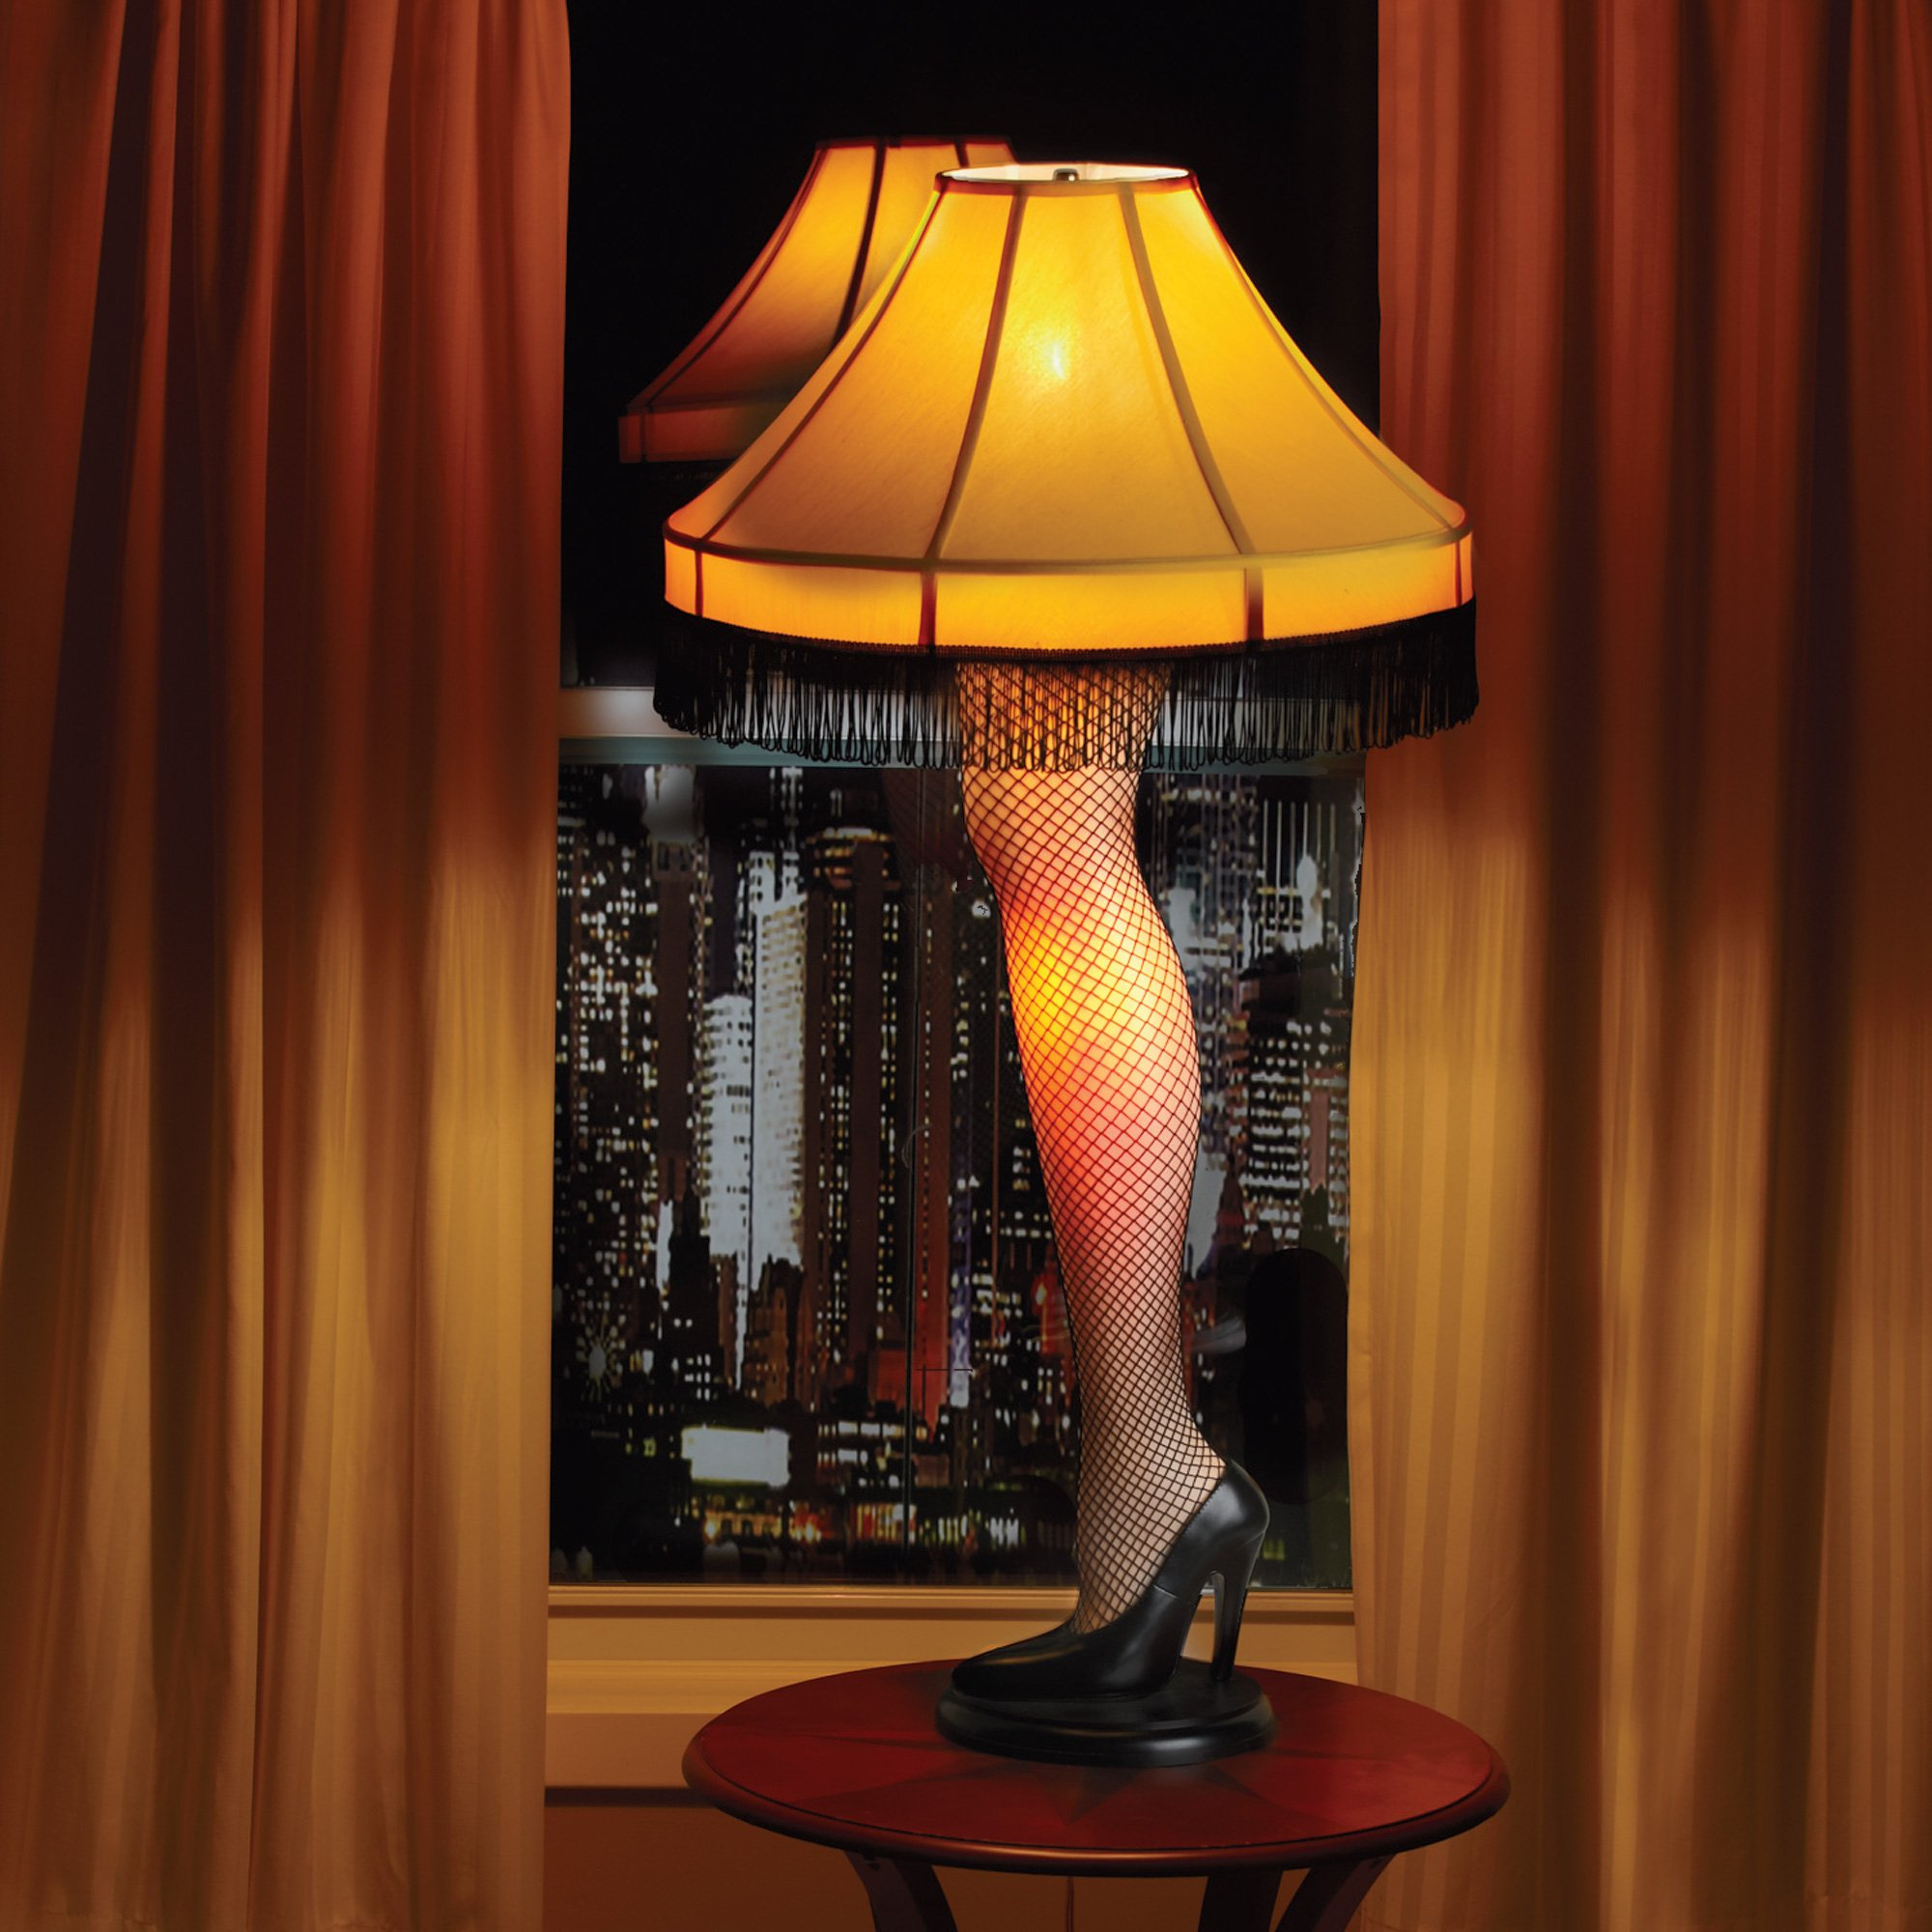 Amputated Leg Lamp (WARNING: Creepy Photo) - Technabob